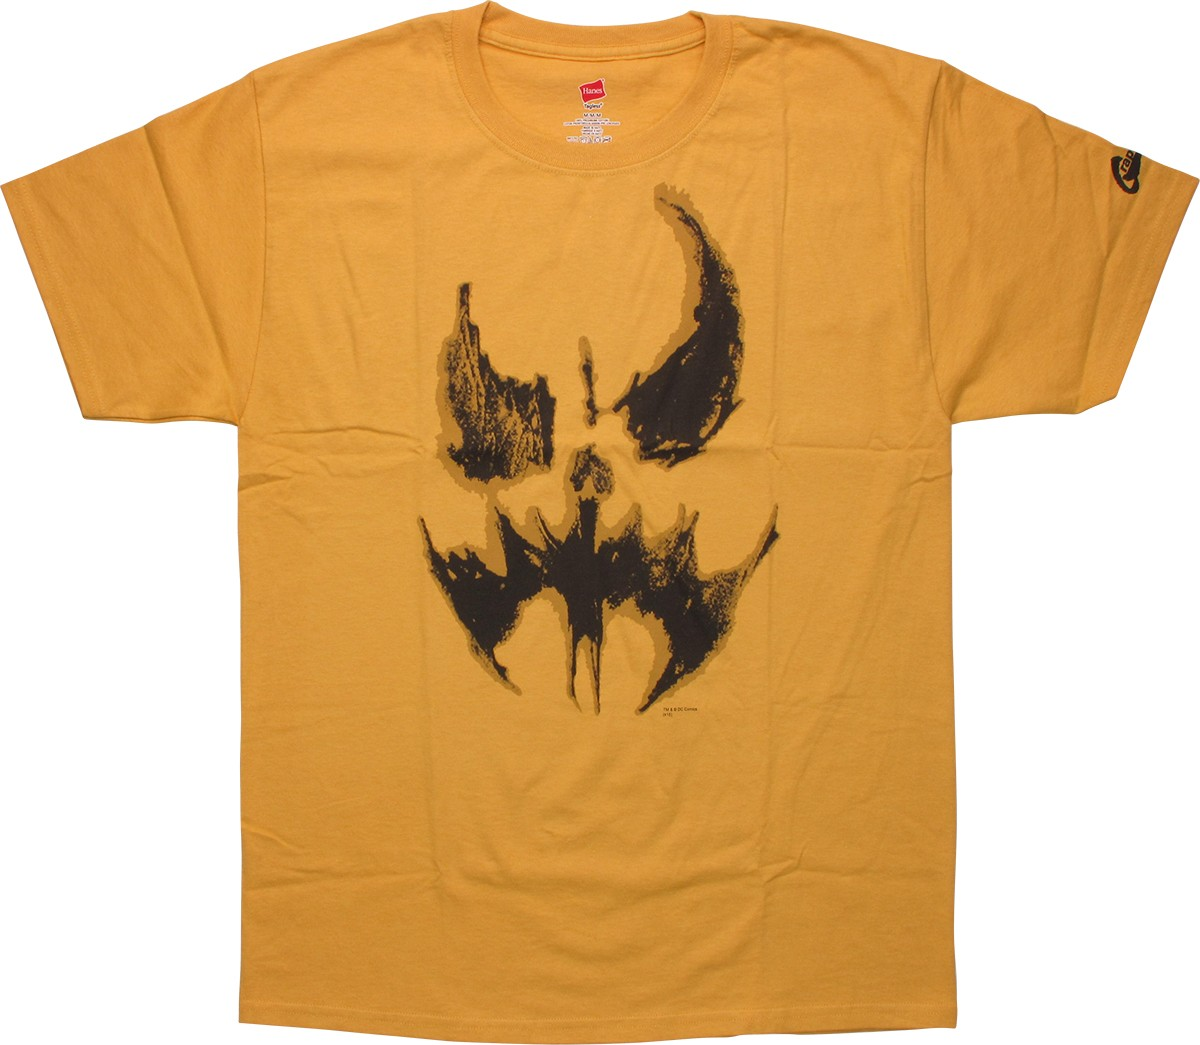 batman scarecrow face t shirt. Black Bedroom Furniture Sets. Home Design Ideas